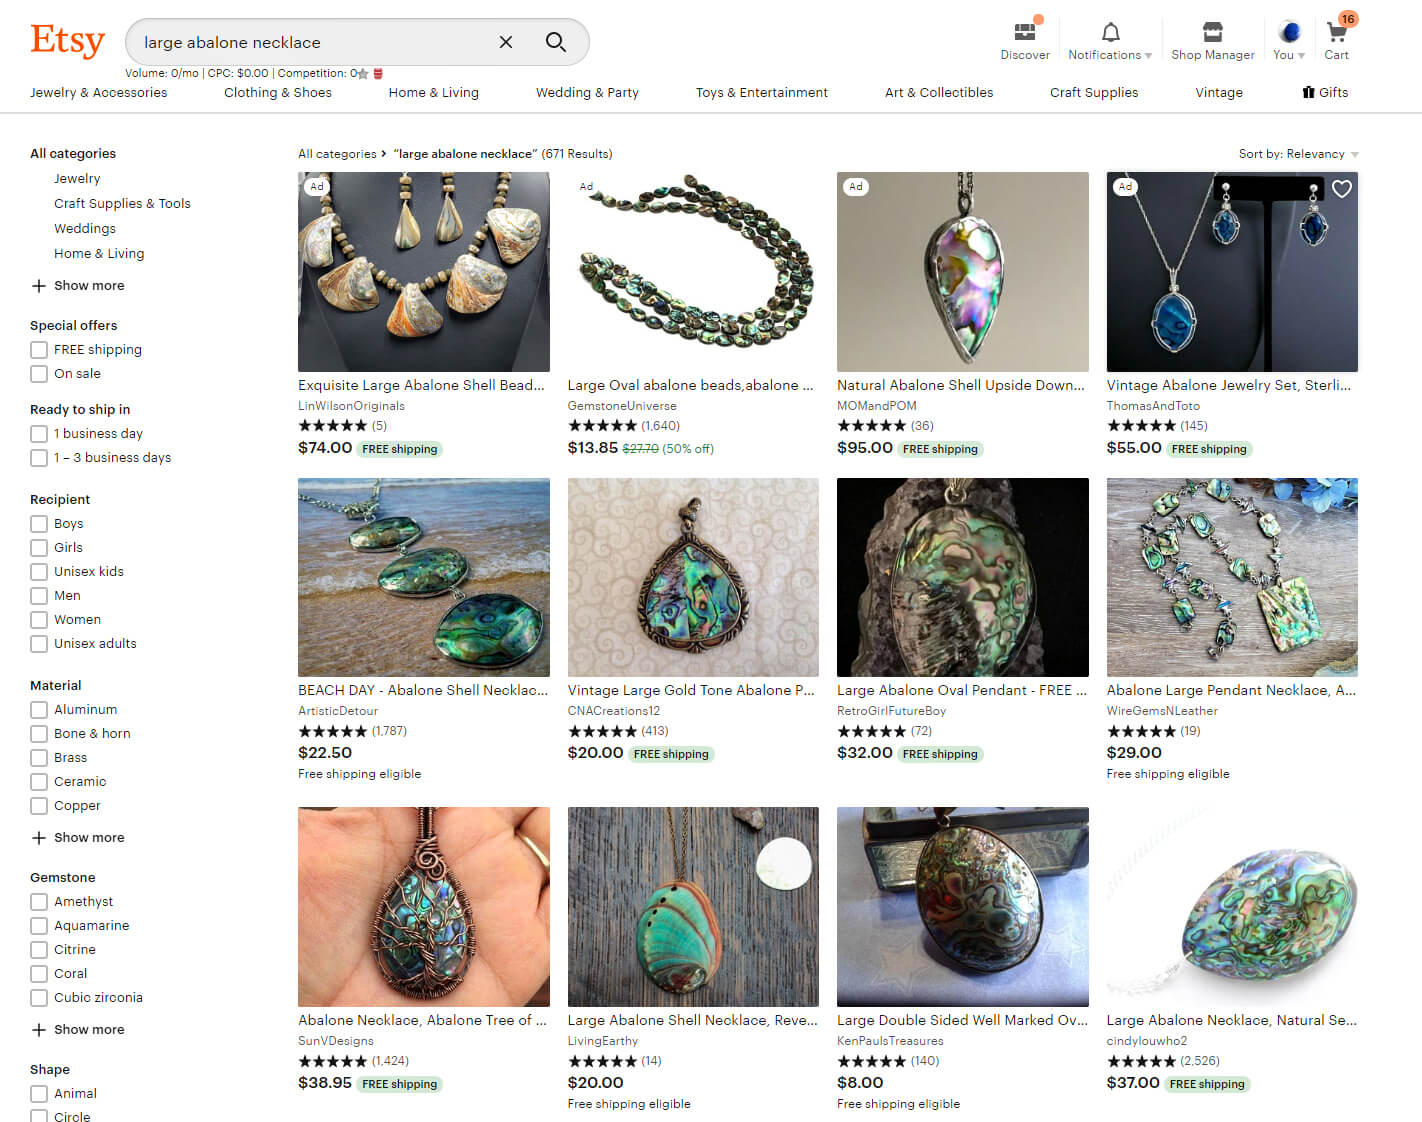 The top rows of US searches on Etsy now have items that ship free - except for the ads, of course.